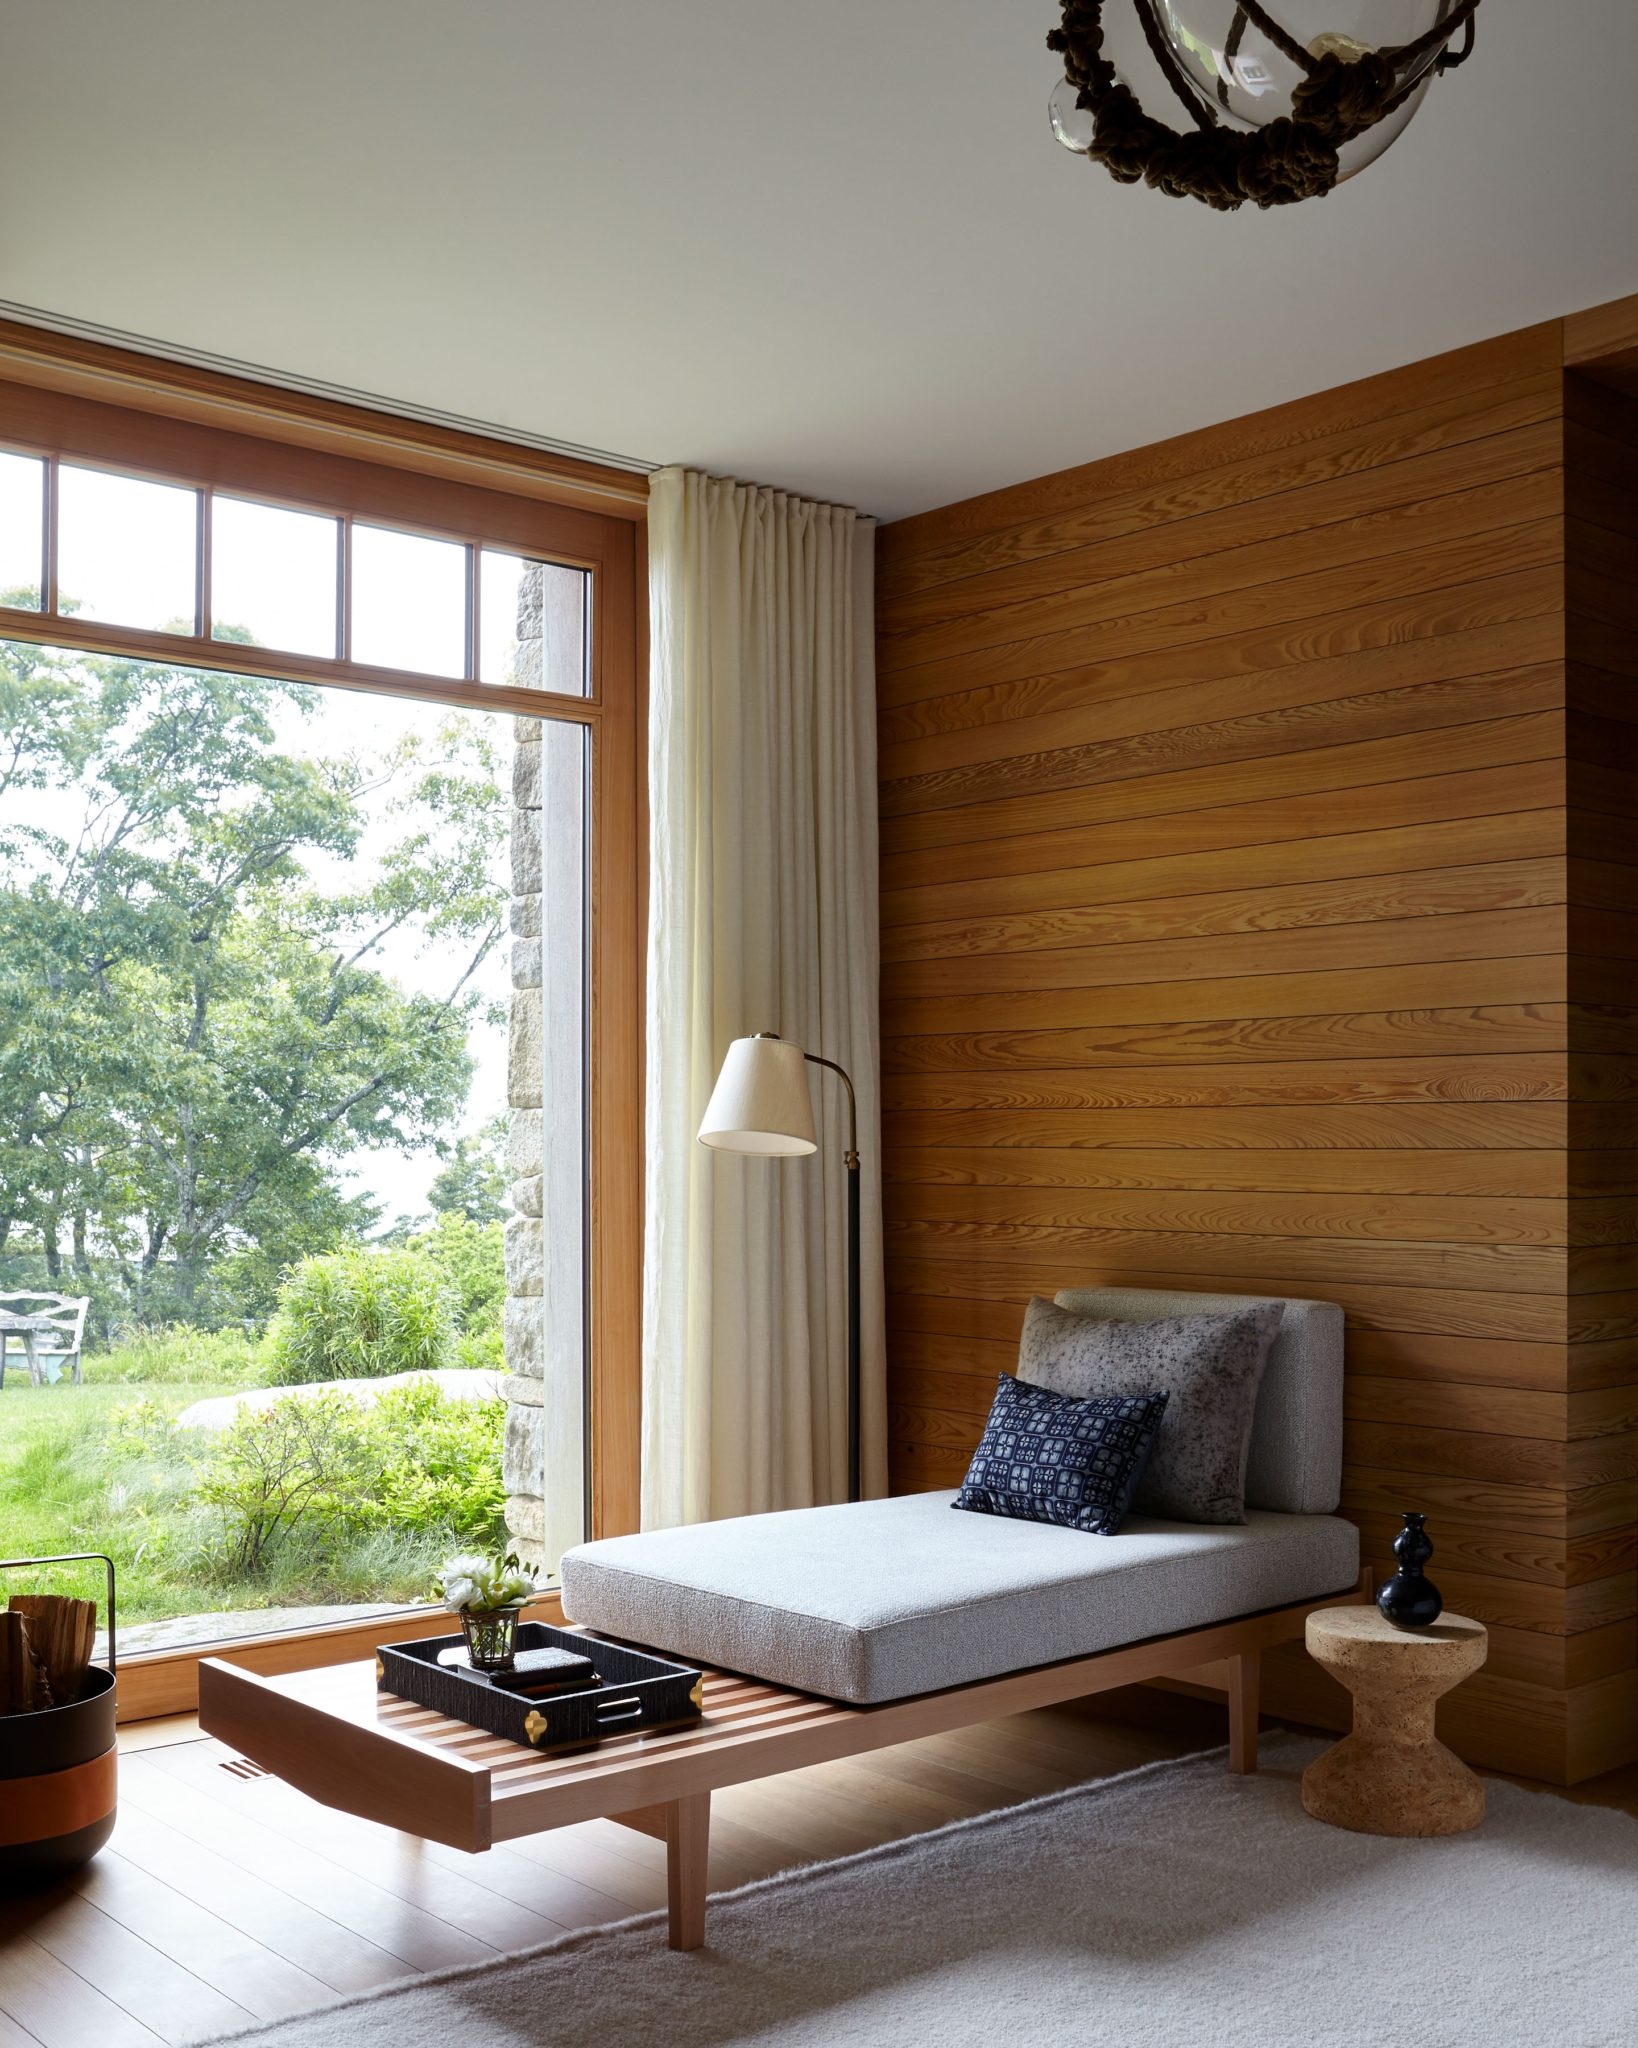 Scandinavian Style Mid Century Wood Paneled New England House Guest Bedroom by Terri Ricci Interiors